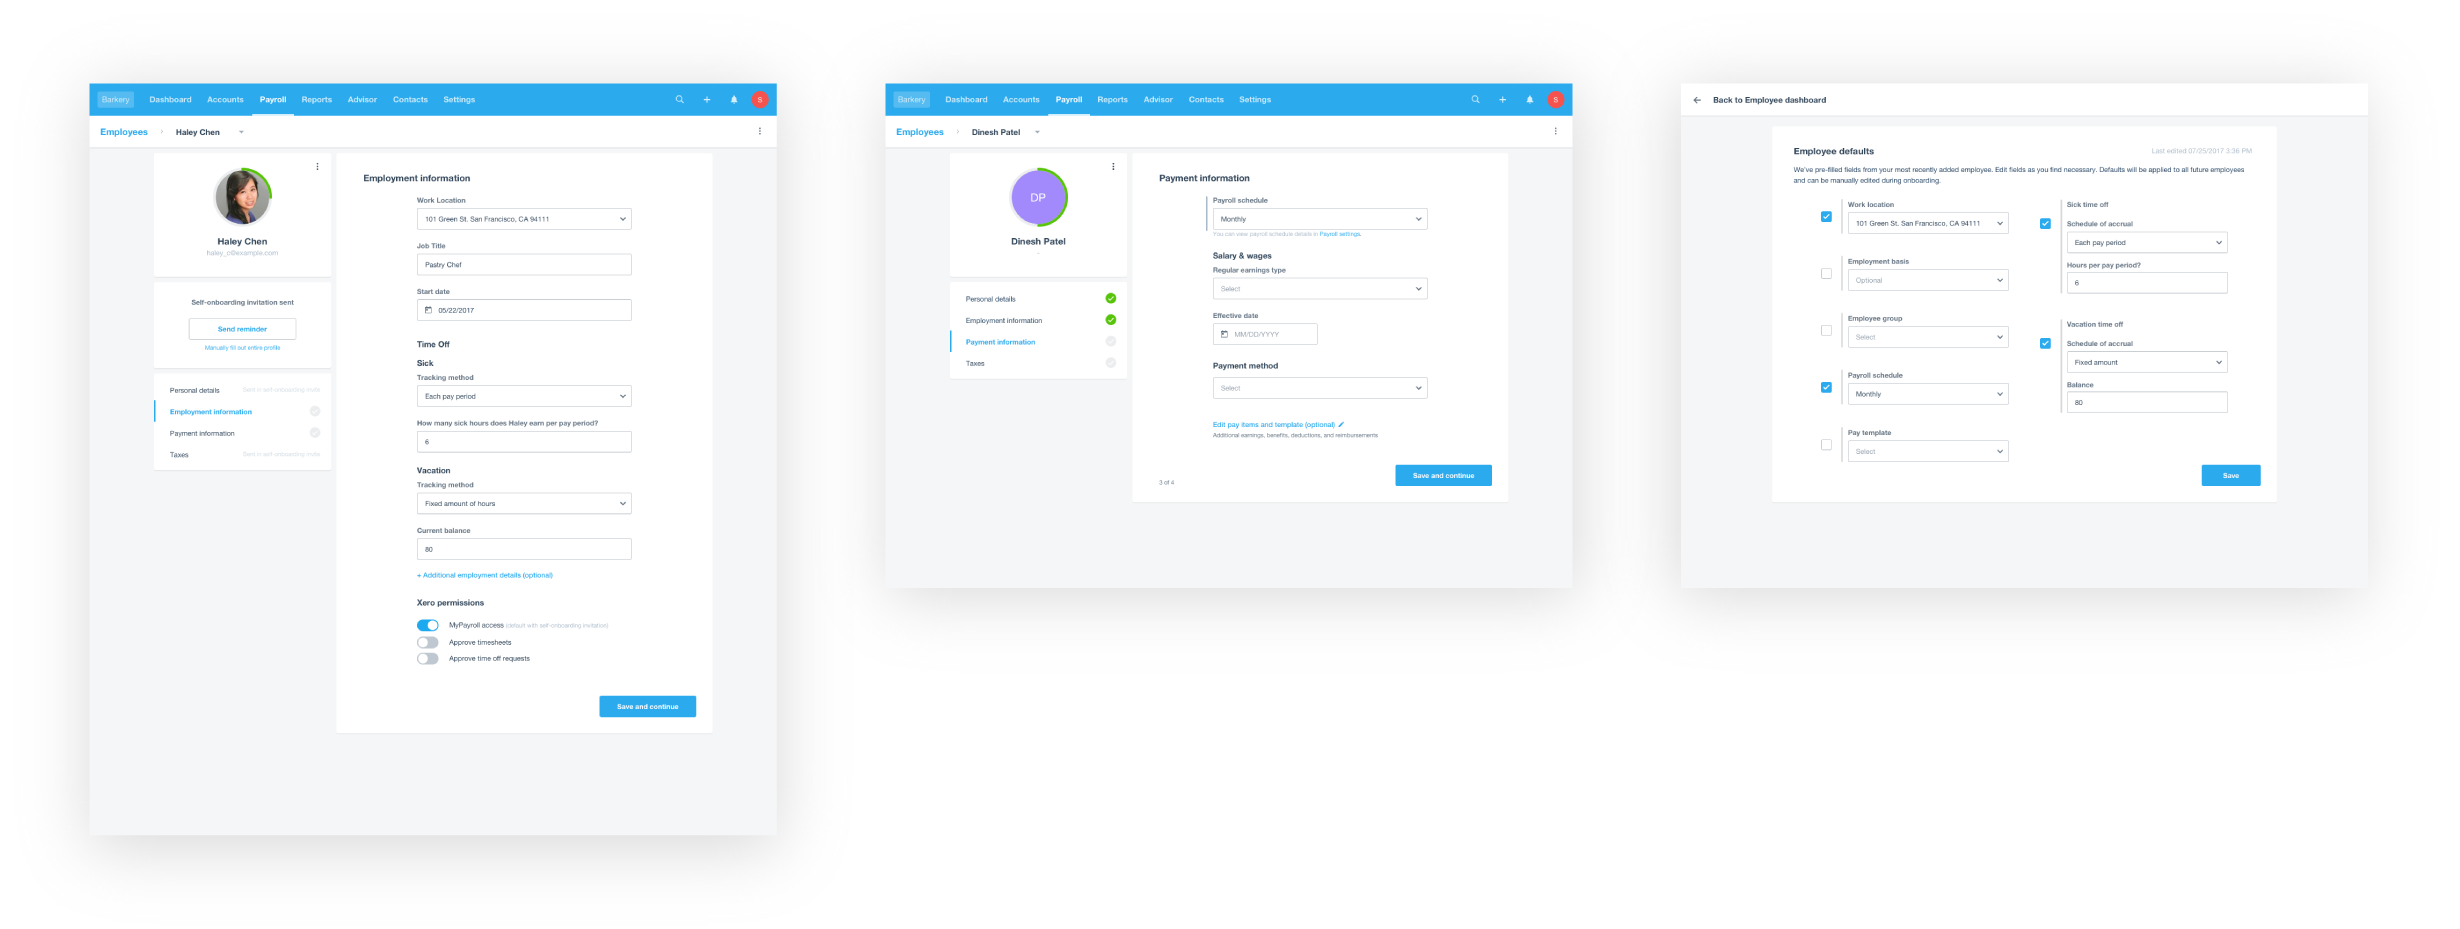 Key screens in employer test, left to right: (1) completed employment details (step 1 of 2 of onboarding), where many users thought they had completed all of onboarding; (2) employee with default applied, where few users picked up on the grey bar next to the defaulted field; (3) setting up employee defaults